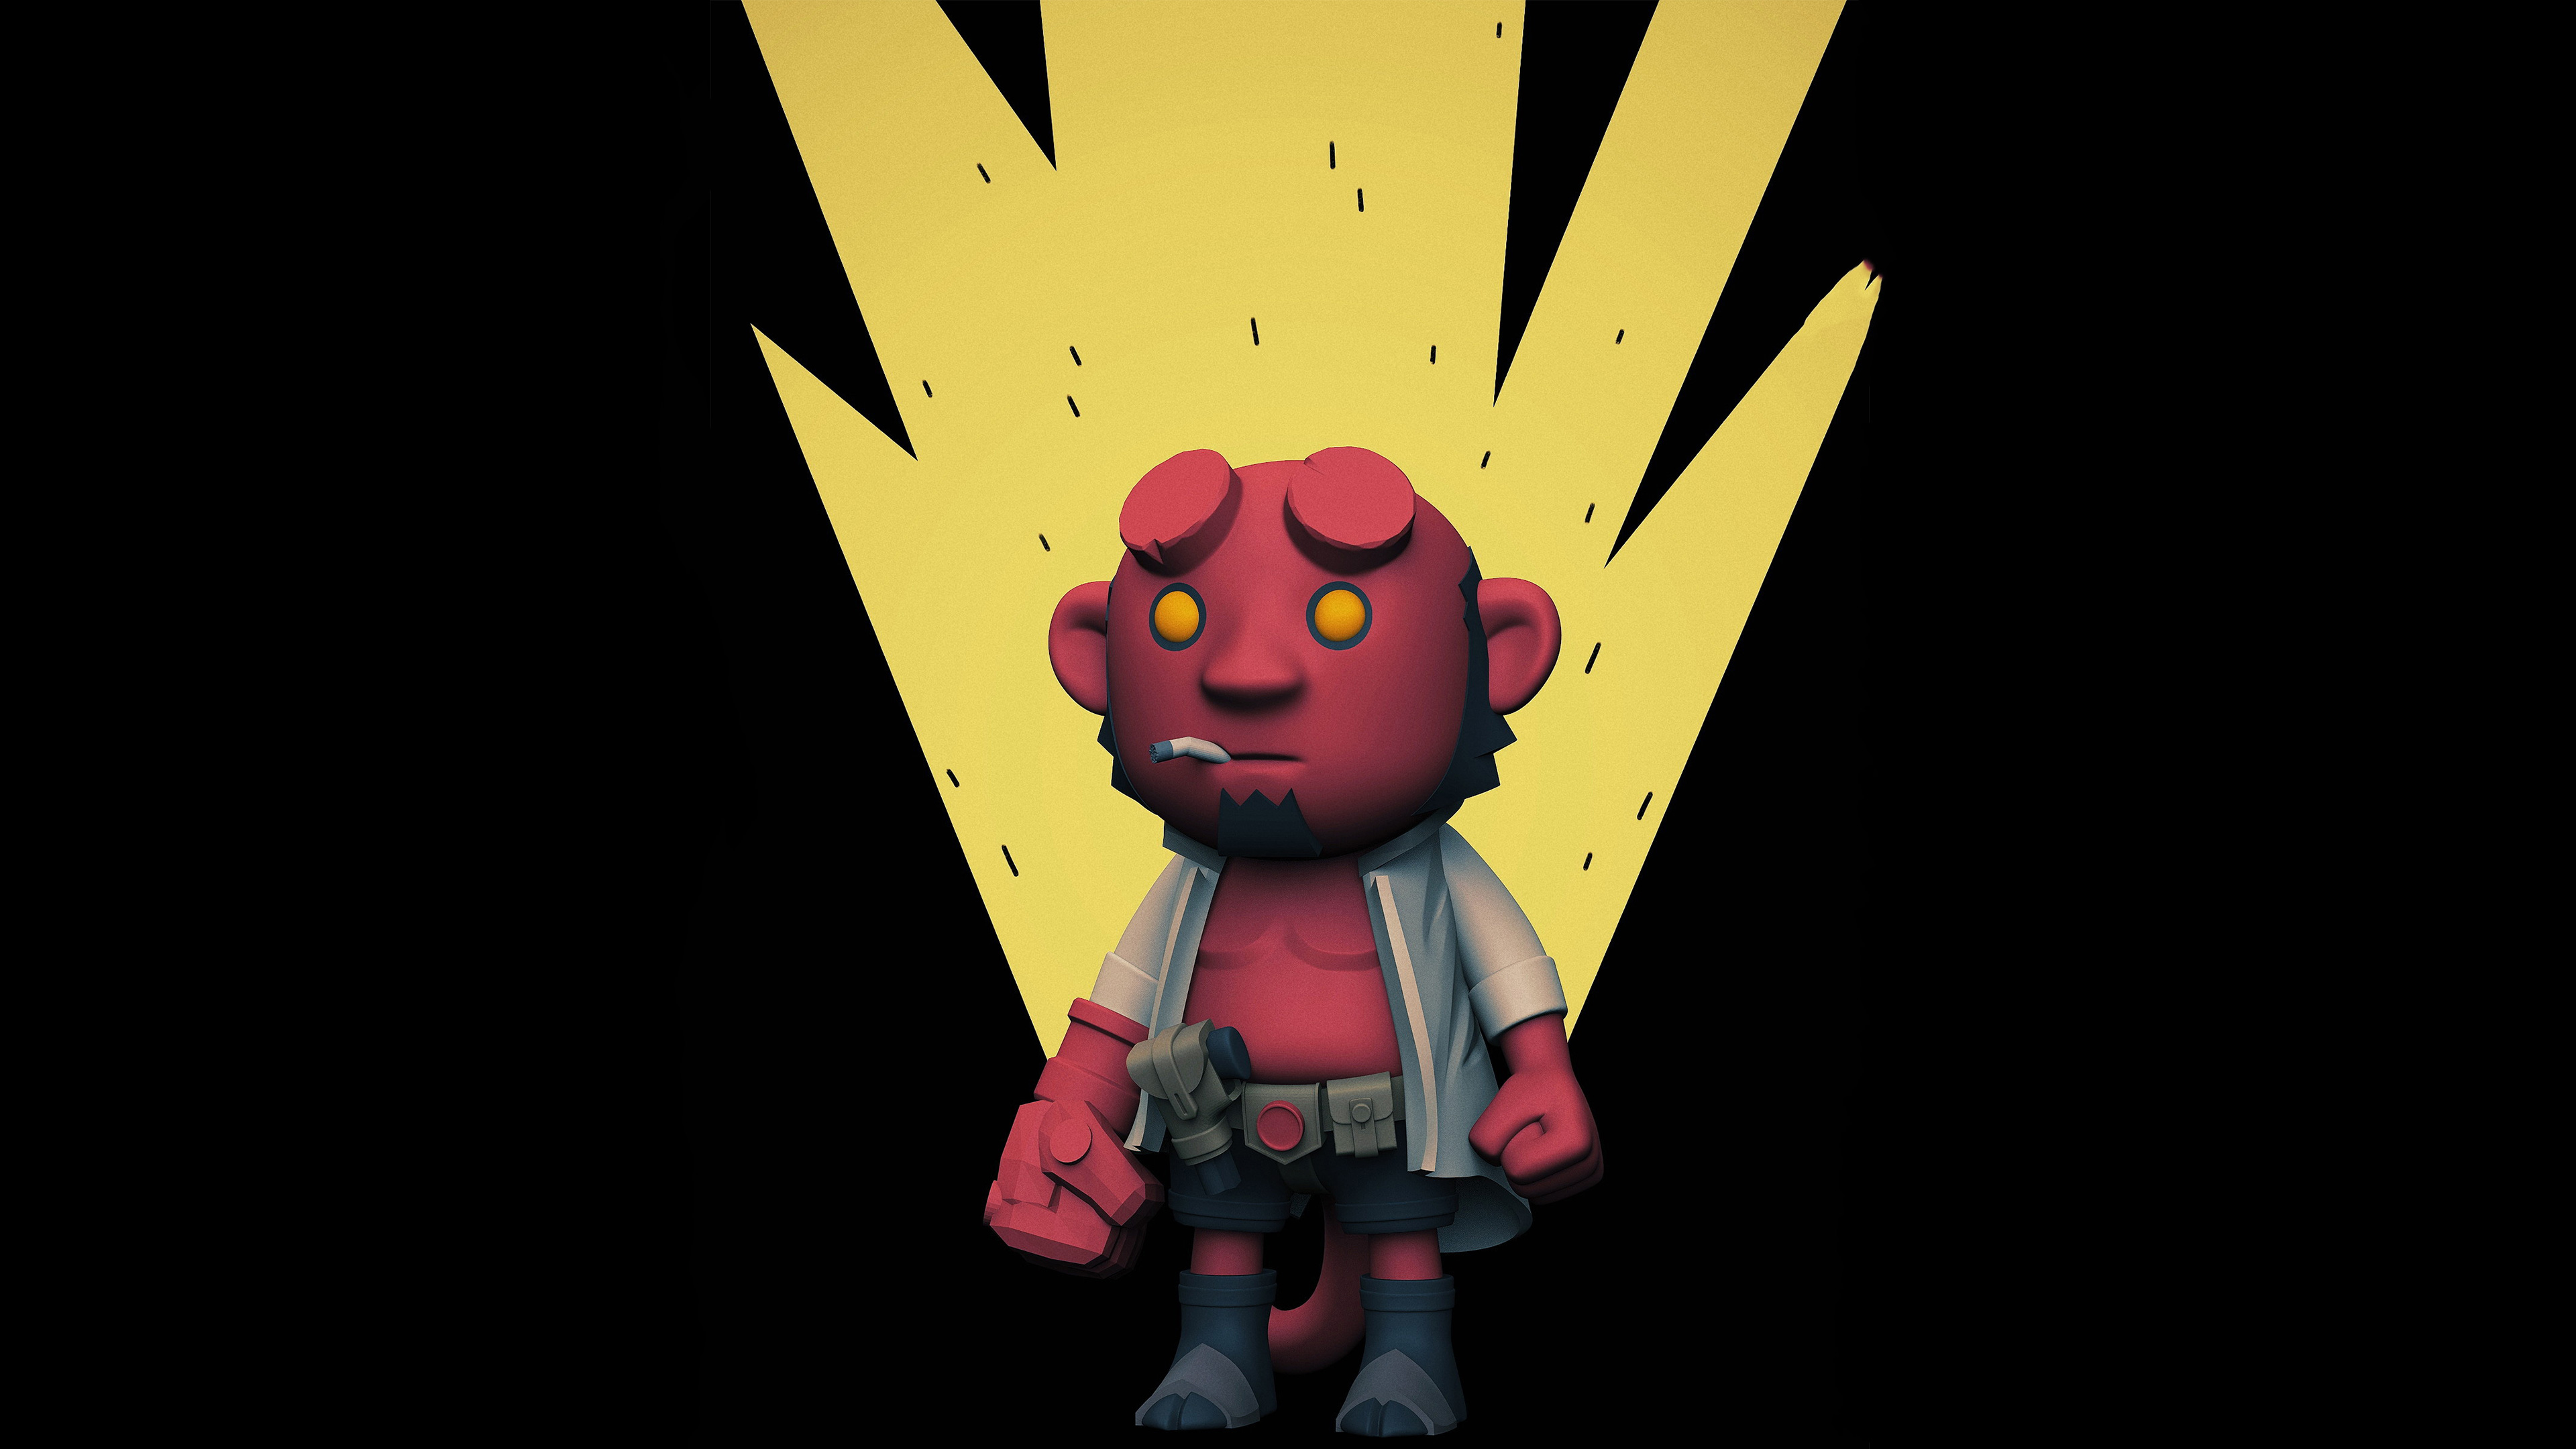 640x1136 Hellboy 4k Iphone 5 5c 5s Se Ipod Touch Hd 4k Wallpapers